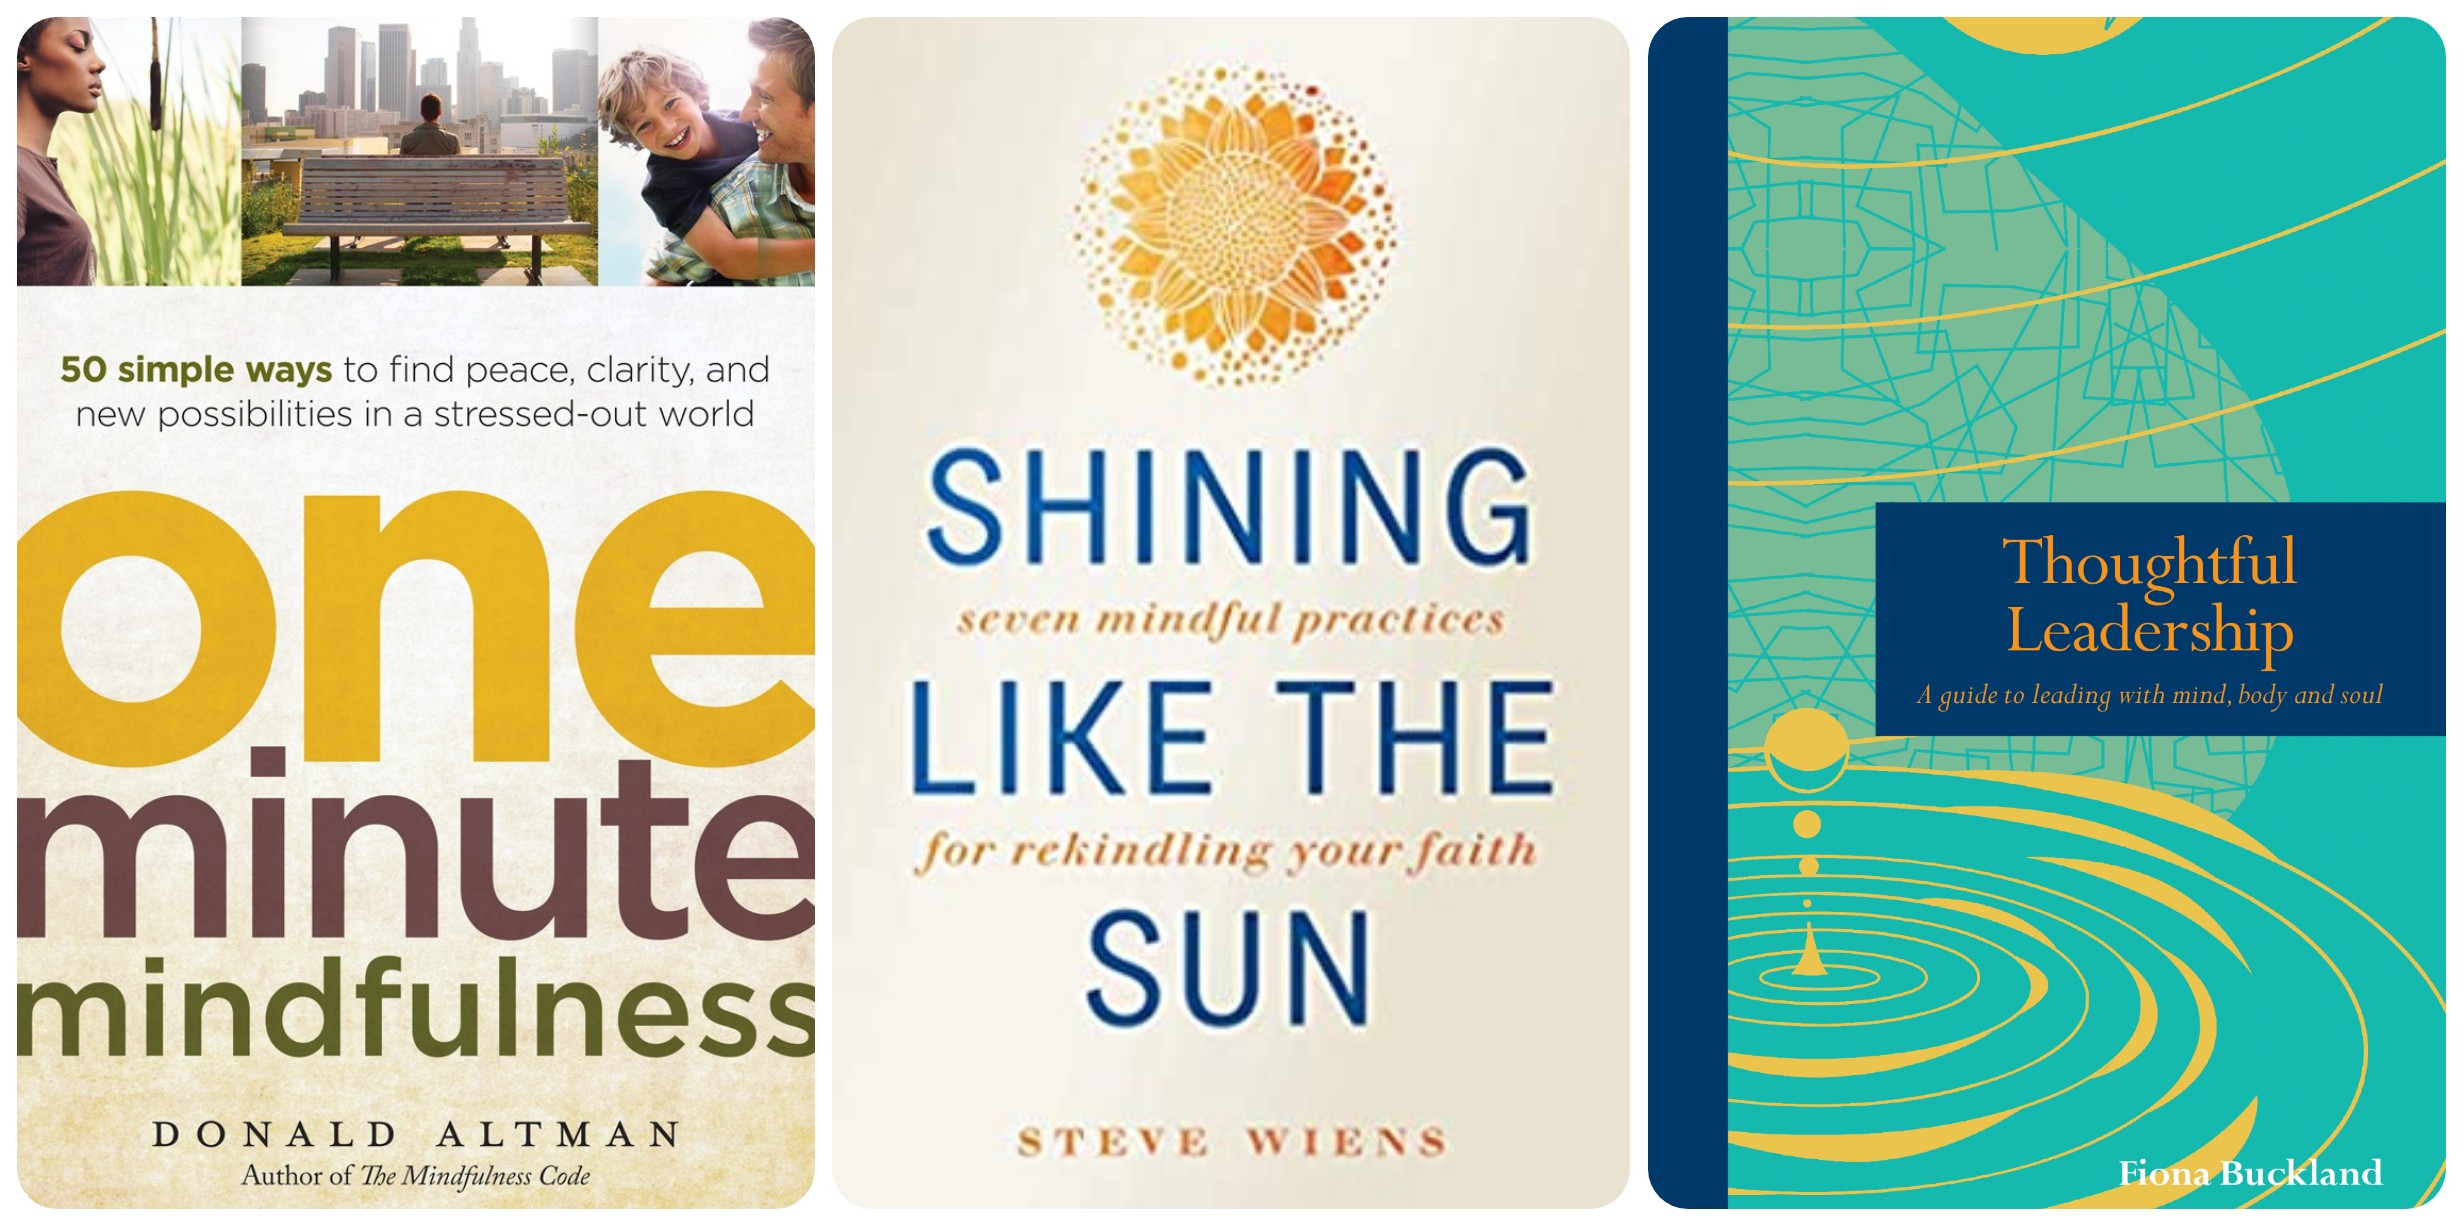 'Mindfulness' is Having a Publishing Moment